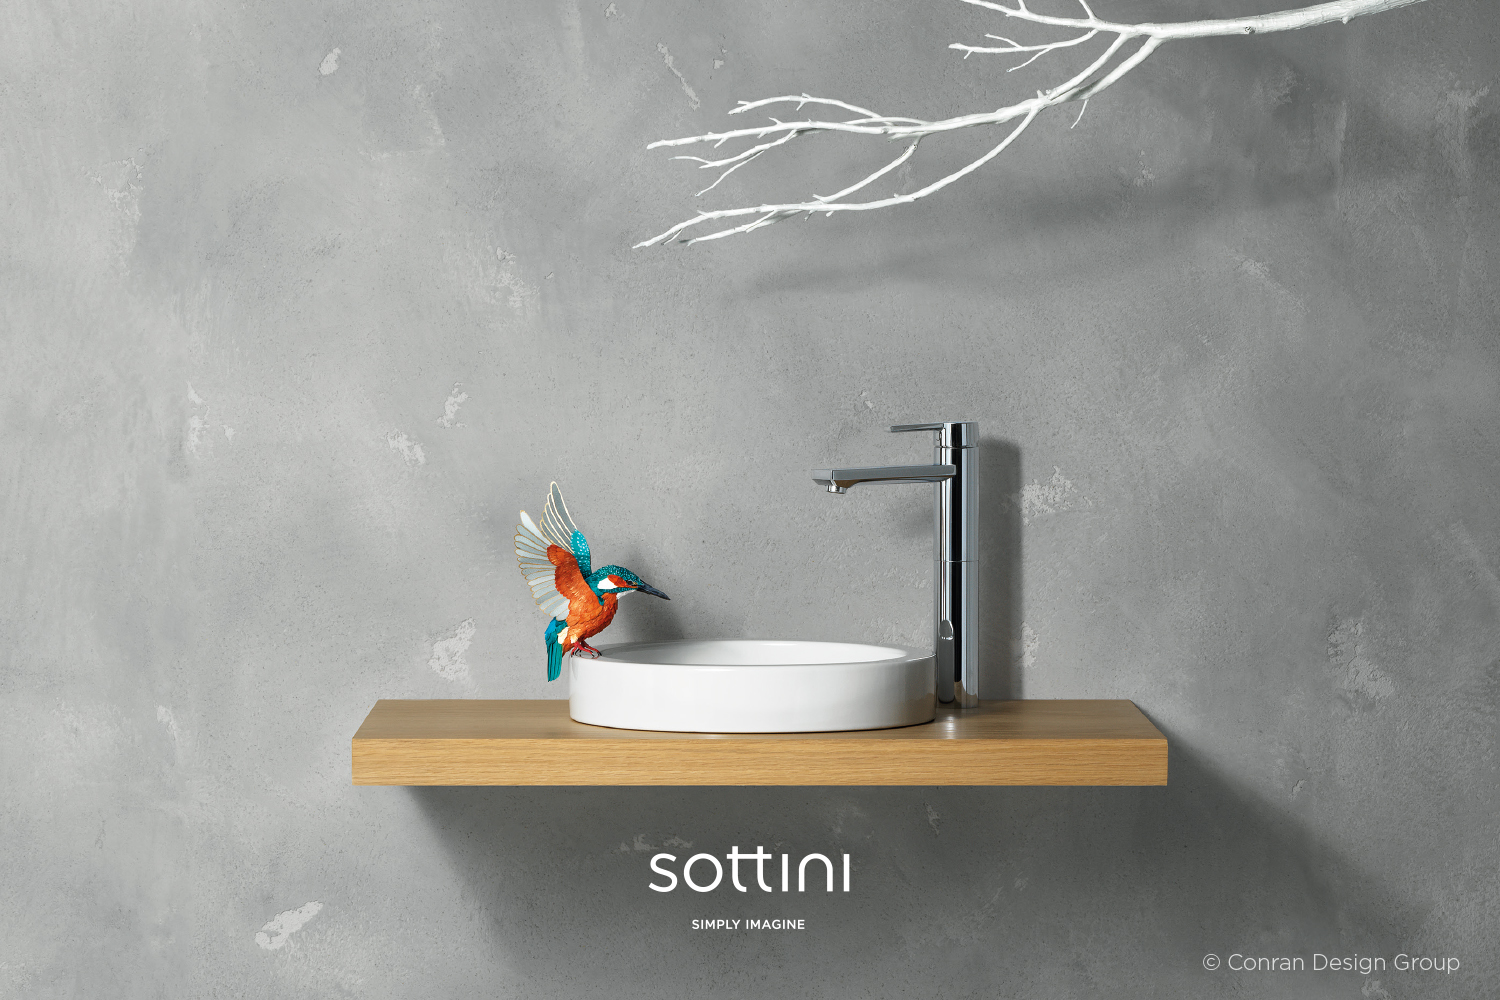 Sottini-Hero_1.jpg